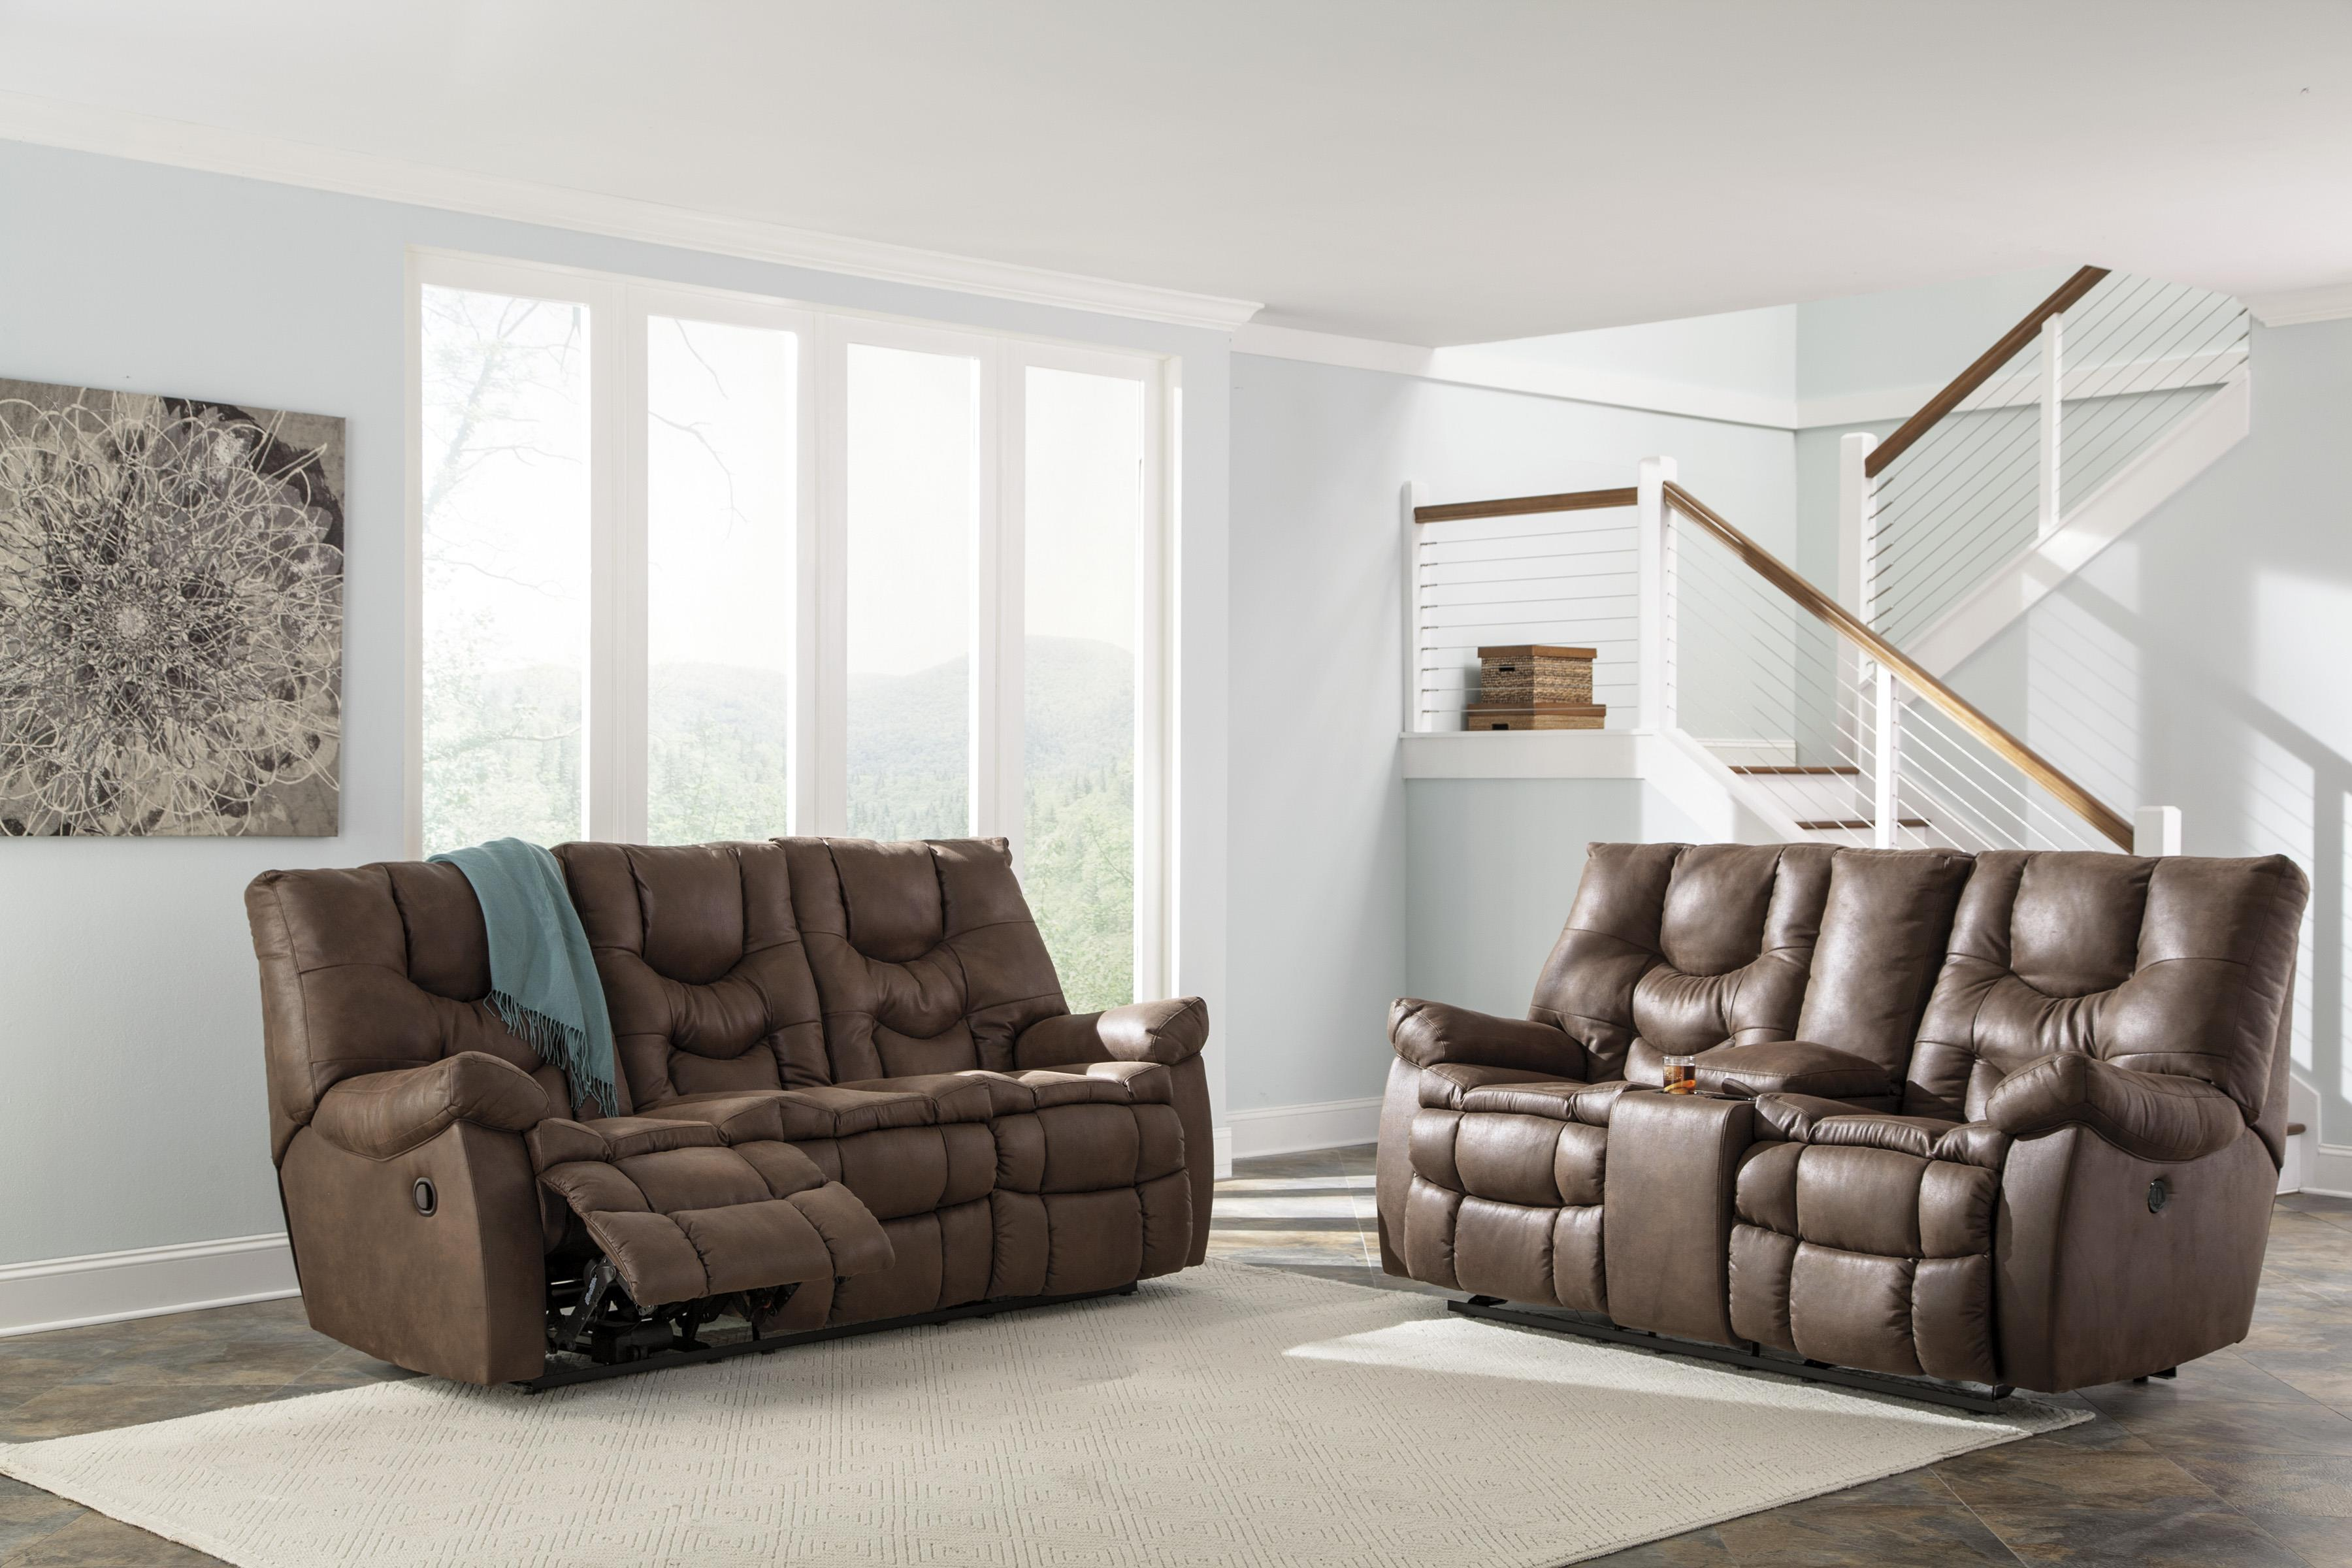 Benchcraft Burgett Reclining Living Room Group - Item Number: 92201 Living Room Group 1